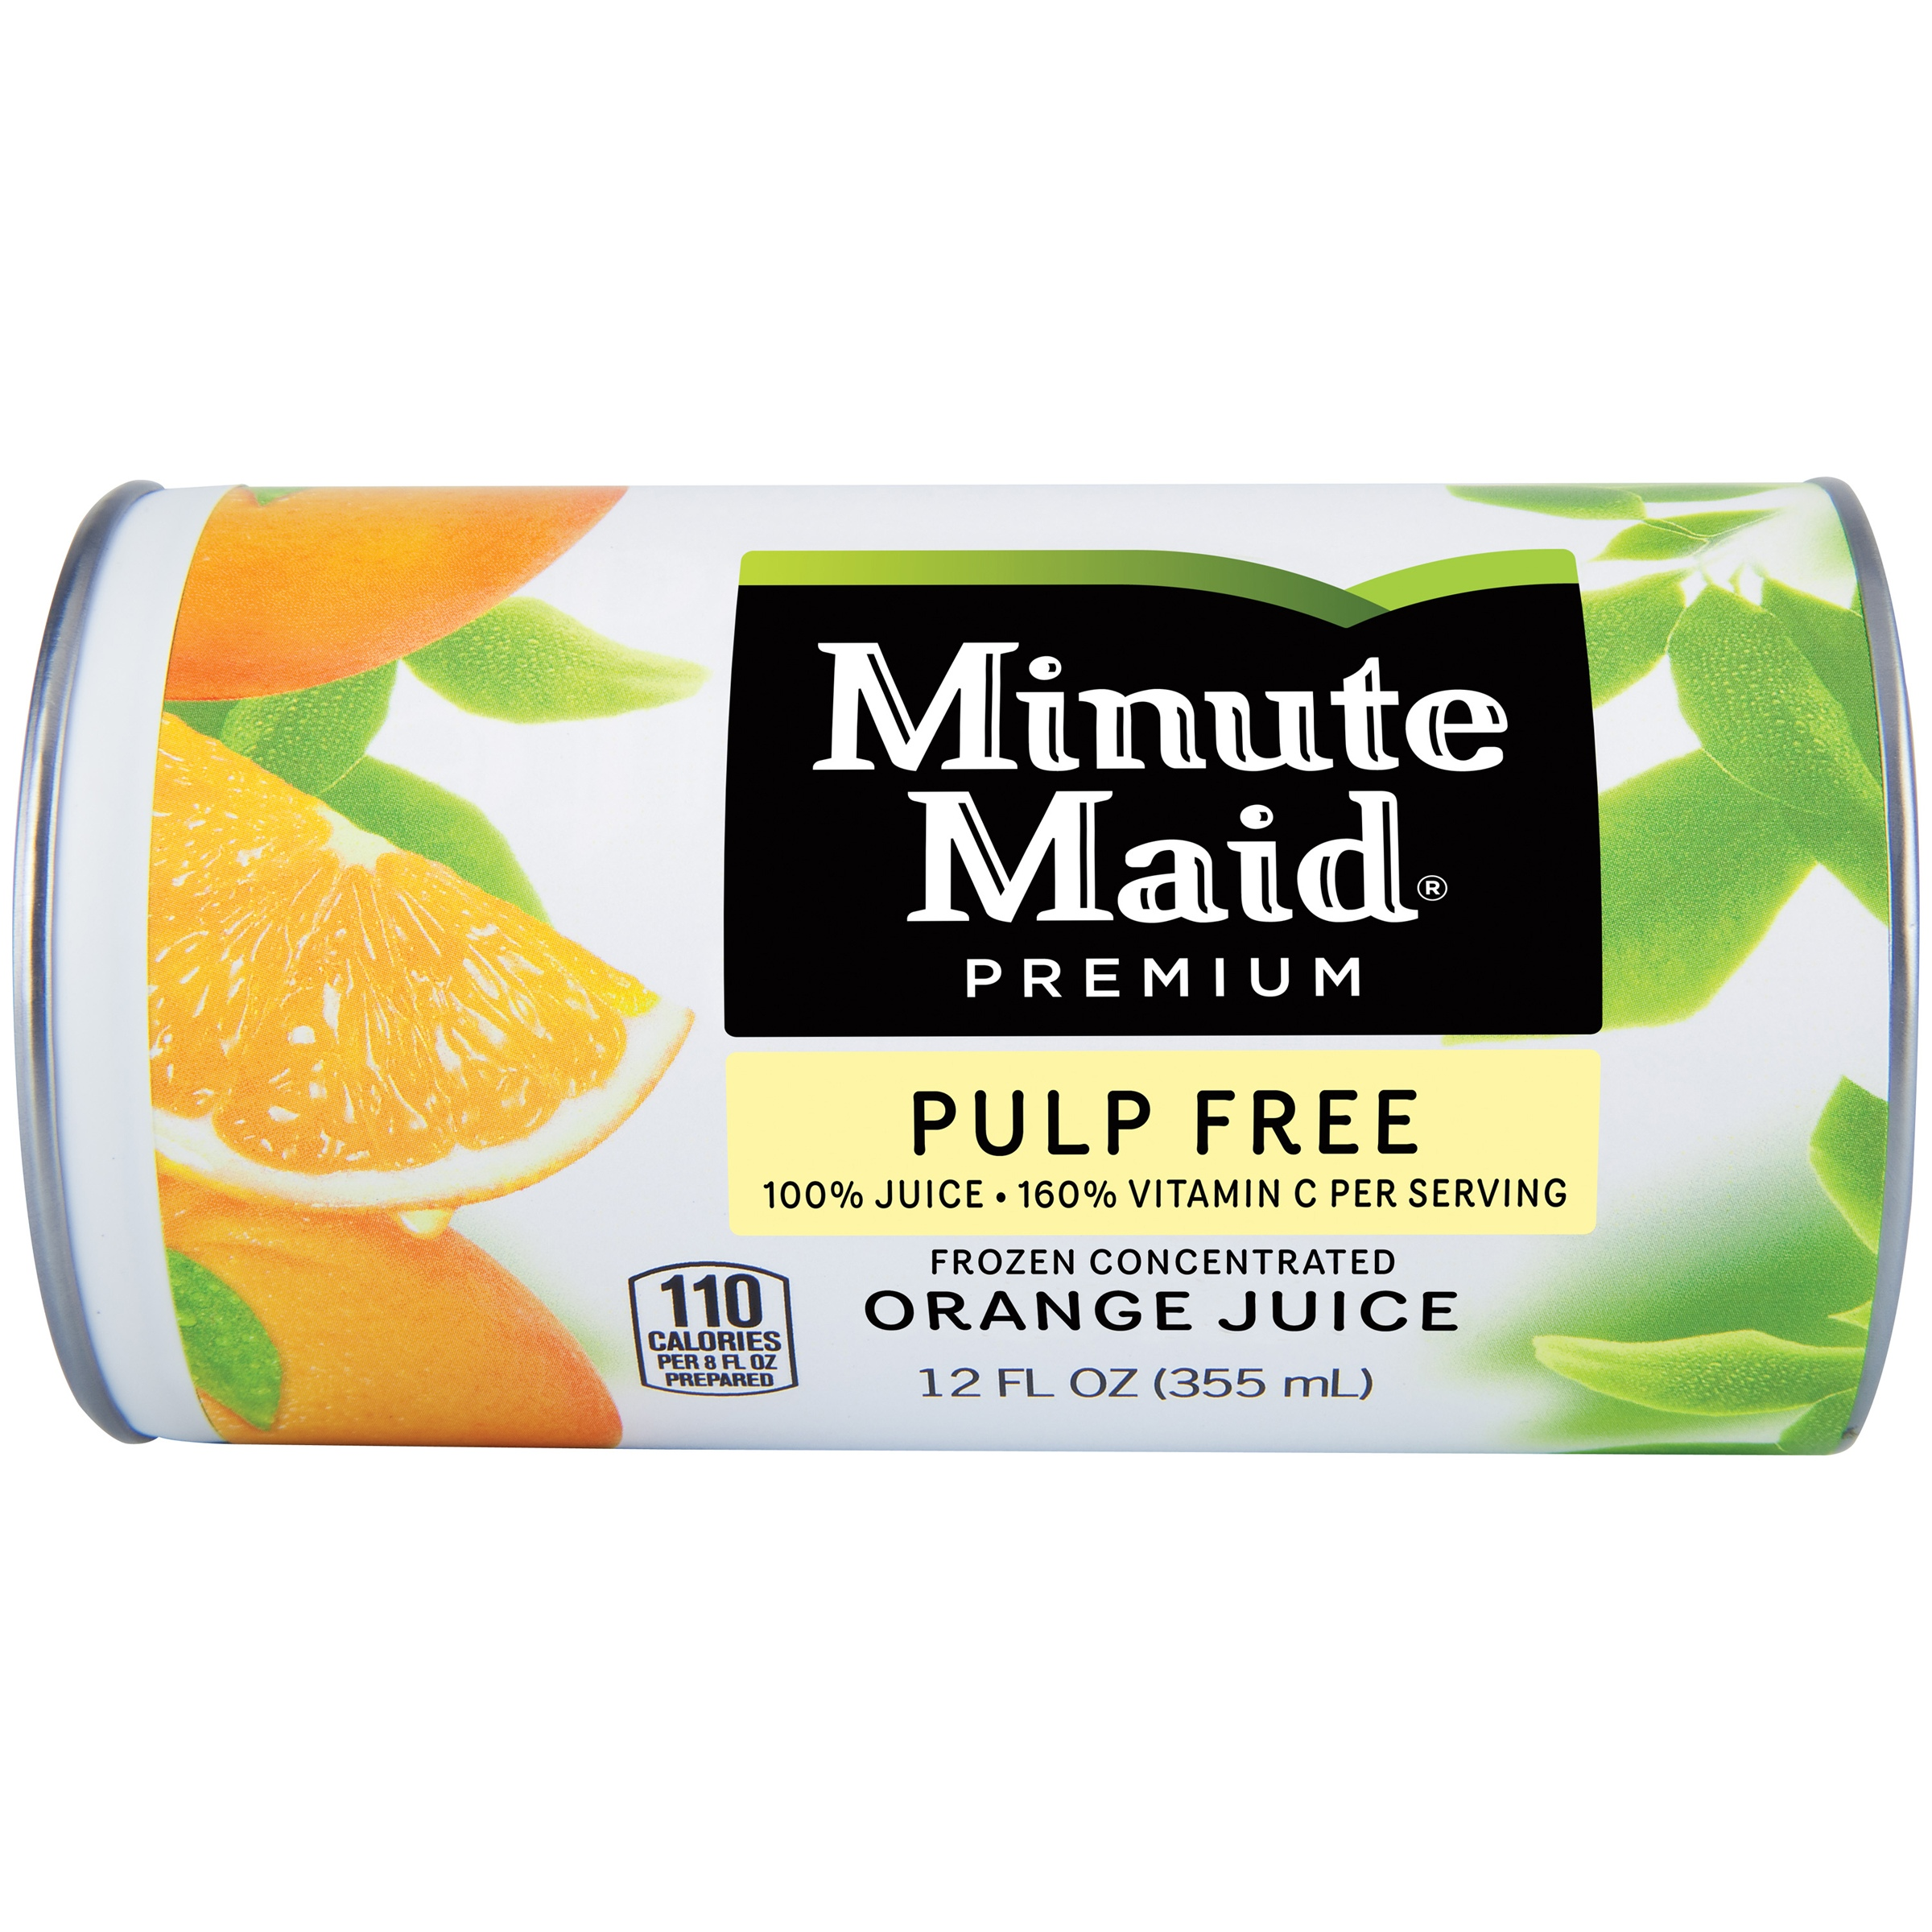 Minute Maid® Premium Pulp Free Orange Juice Frozen Concentrated 12 fl. oz. Can